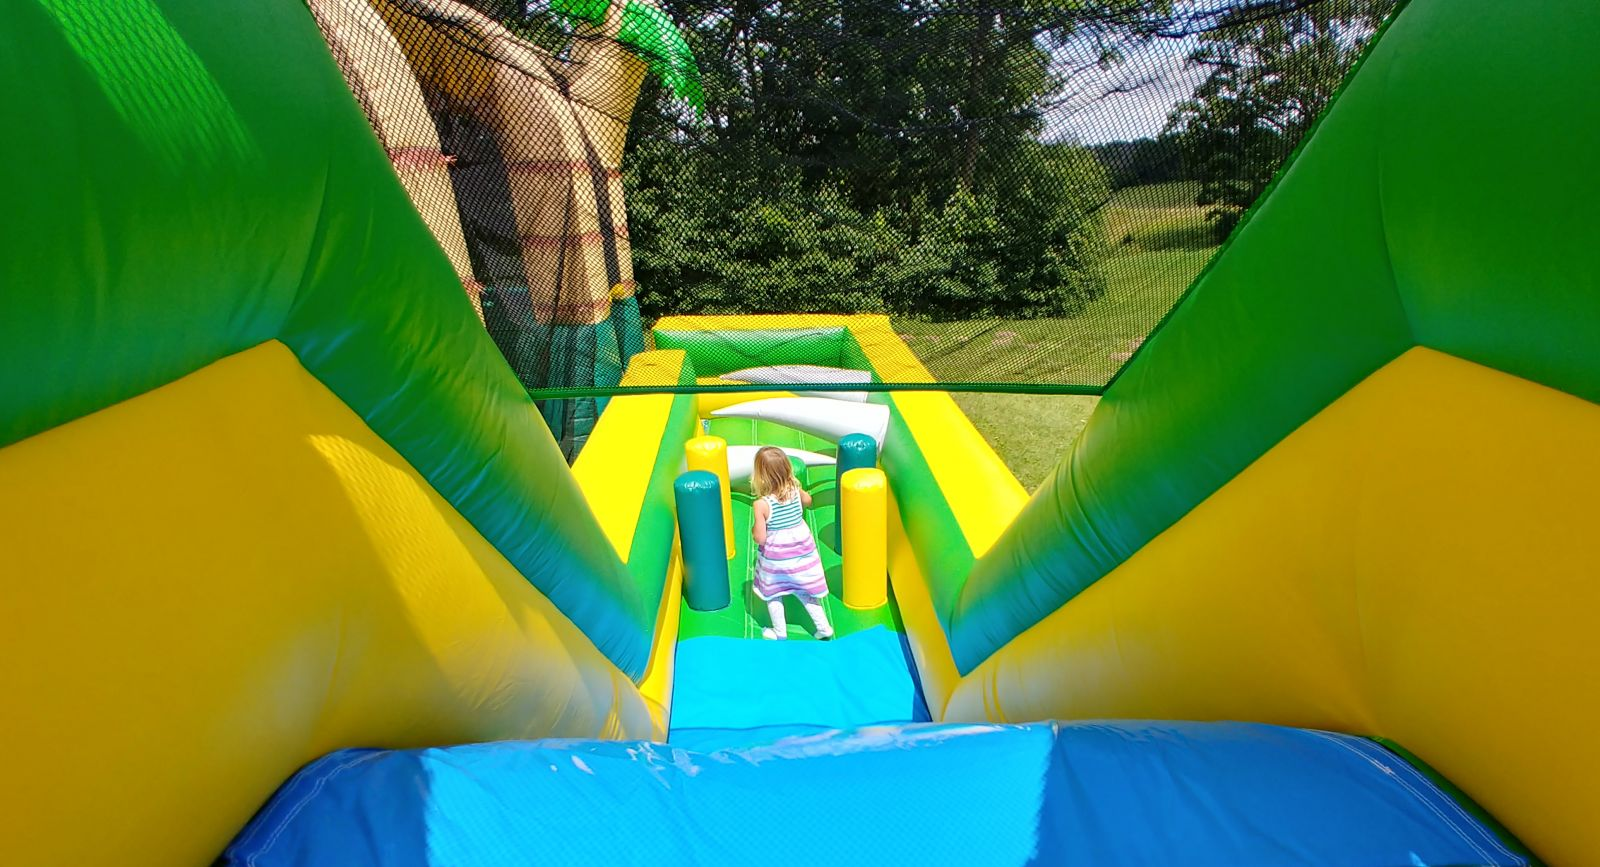 Young girl on tropical inflatable obstacle course